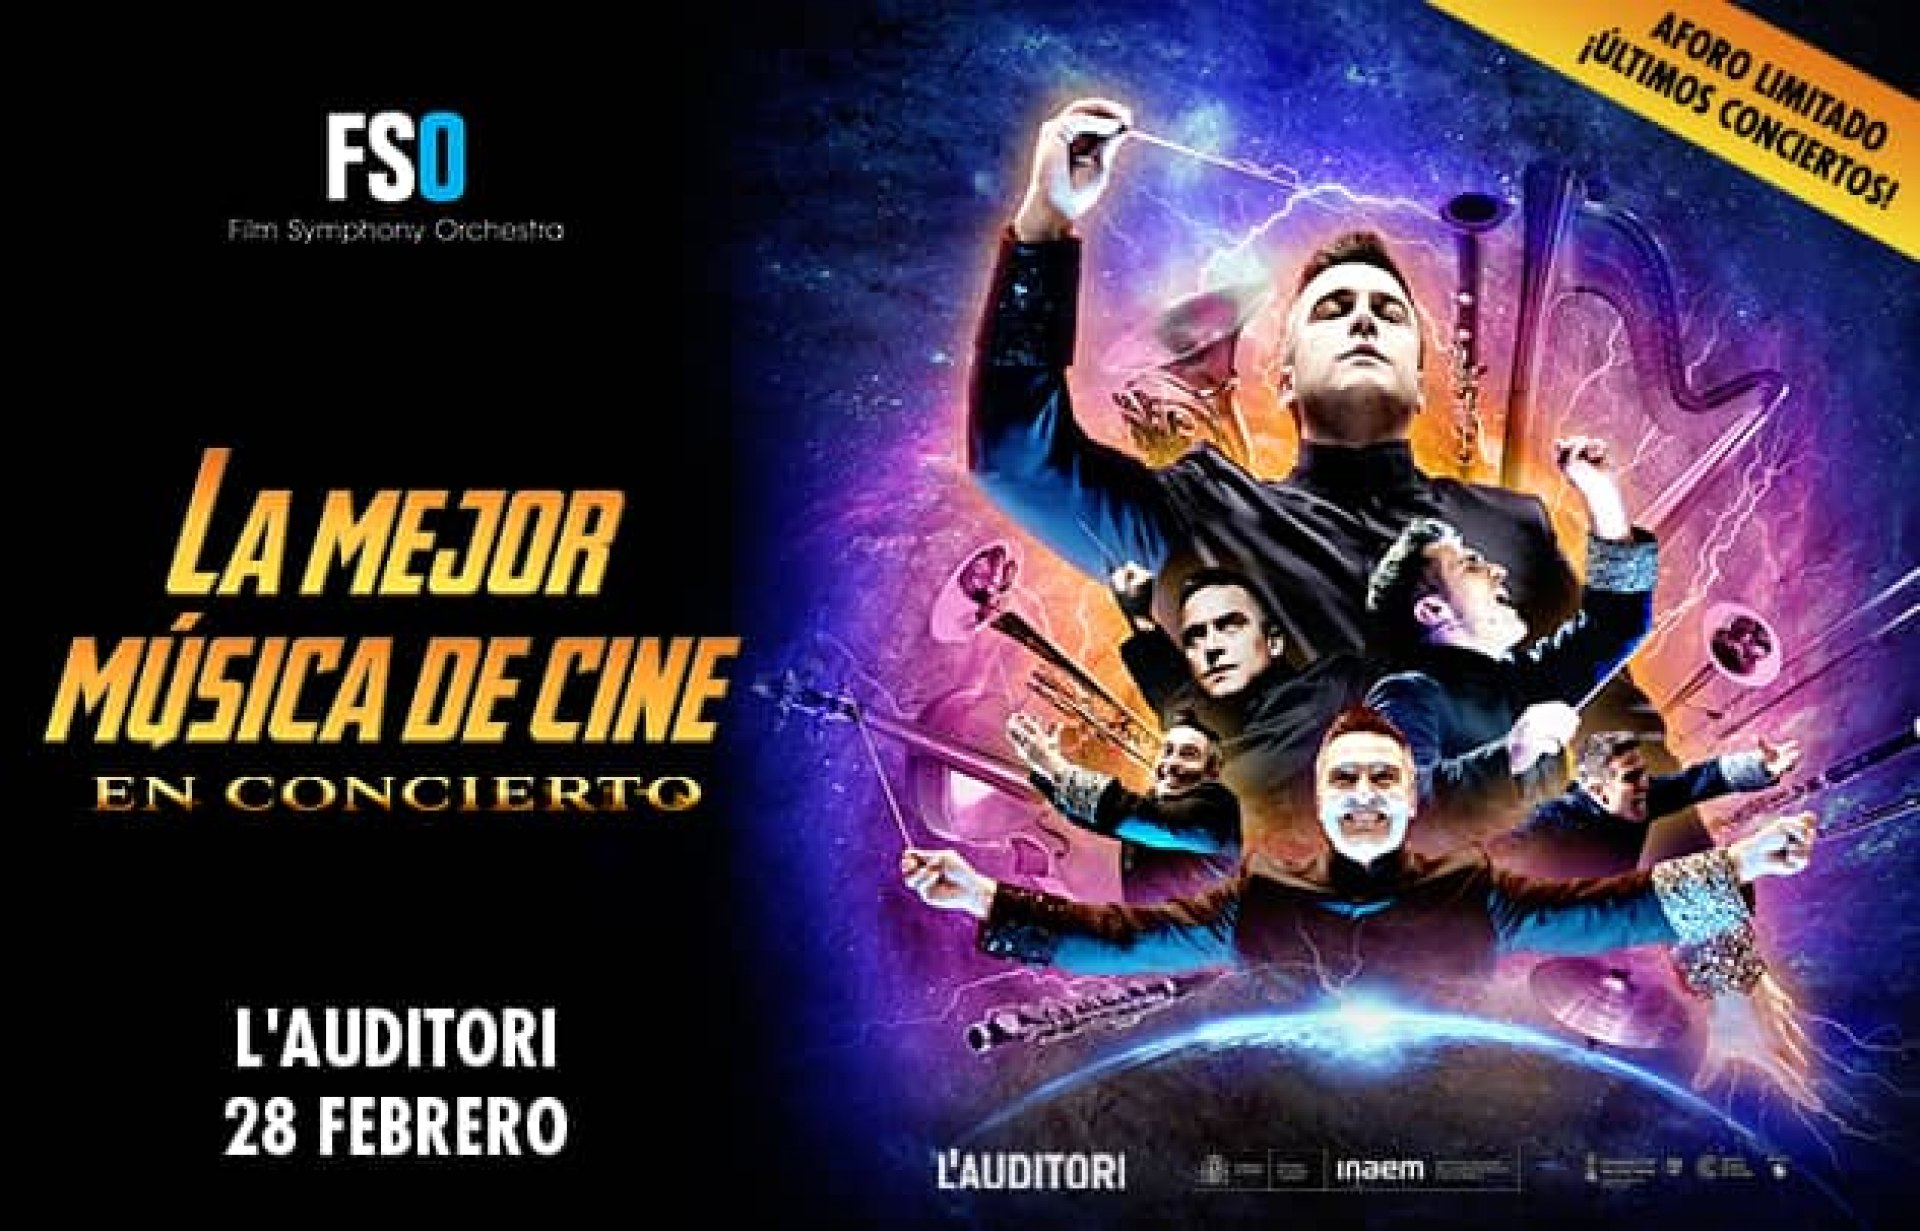 FSO Tour - The Best Cinematic Music in Concert